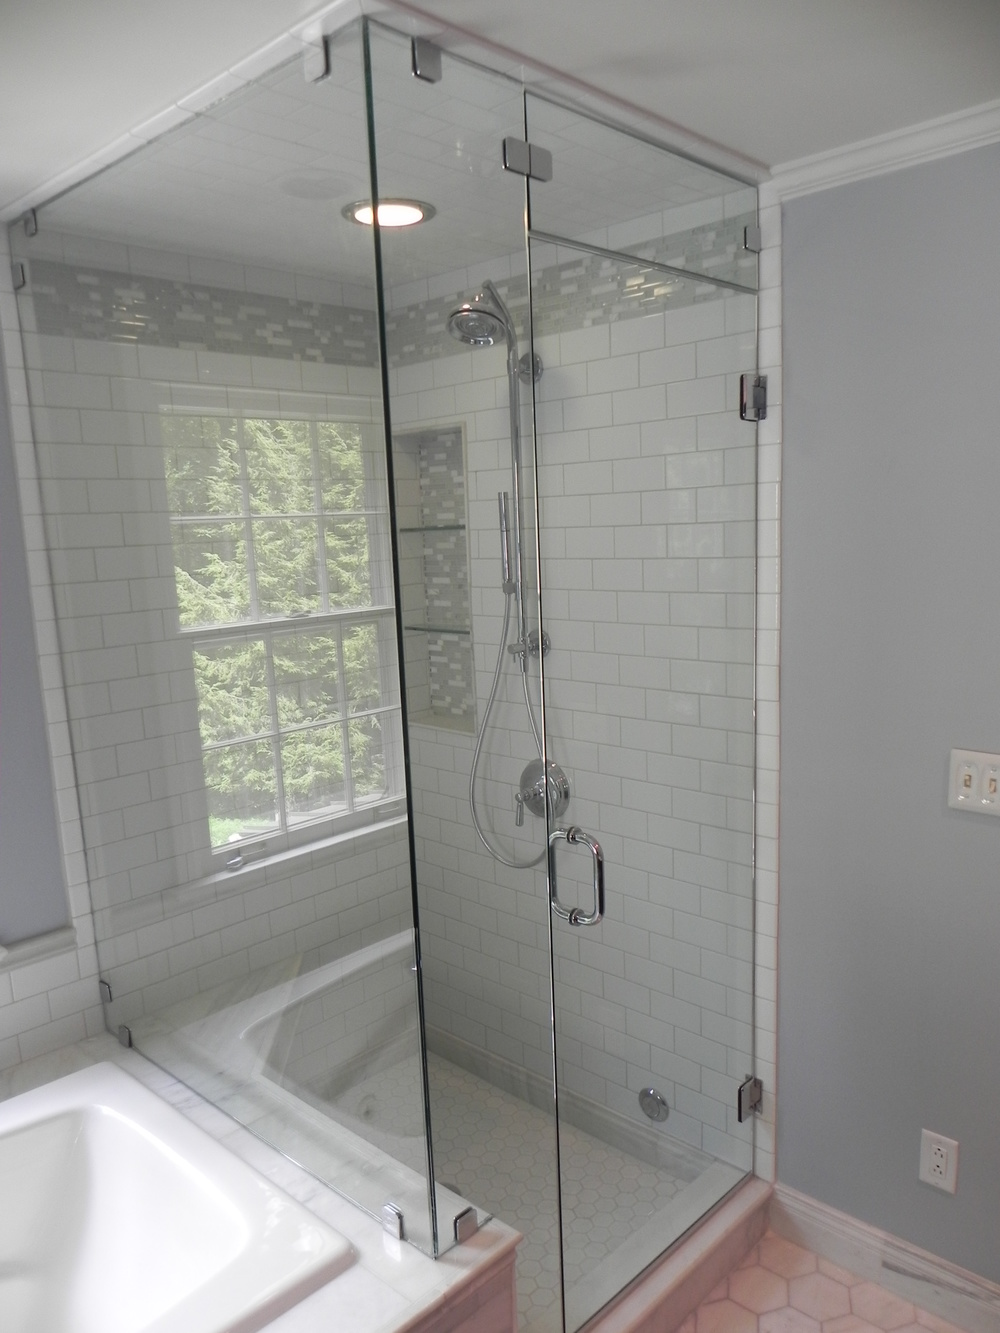 Glass shower enclosures bathroom renovations steam shower glass over tub eventelaan Images